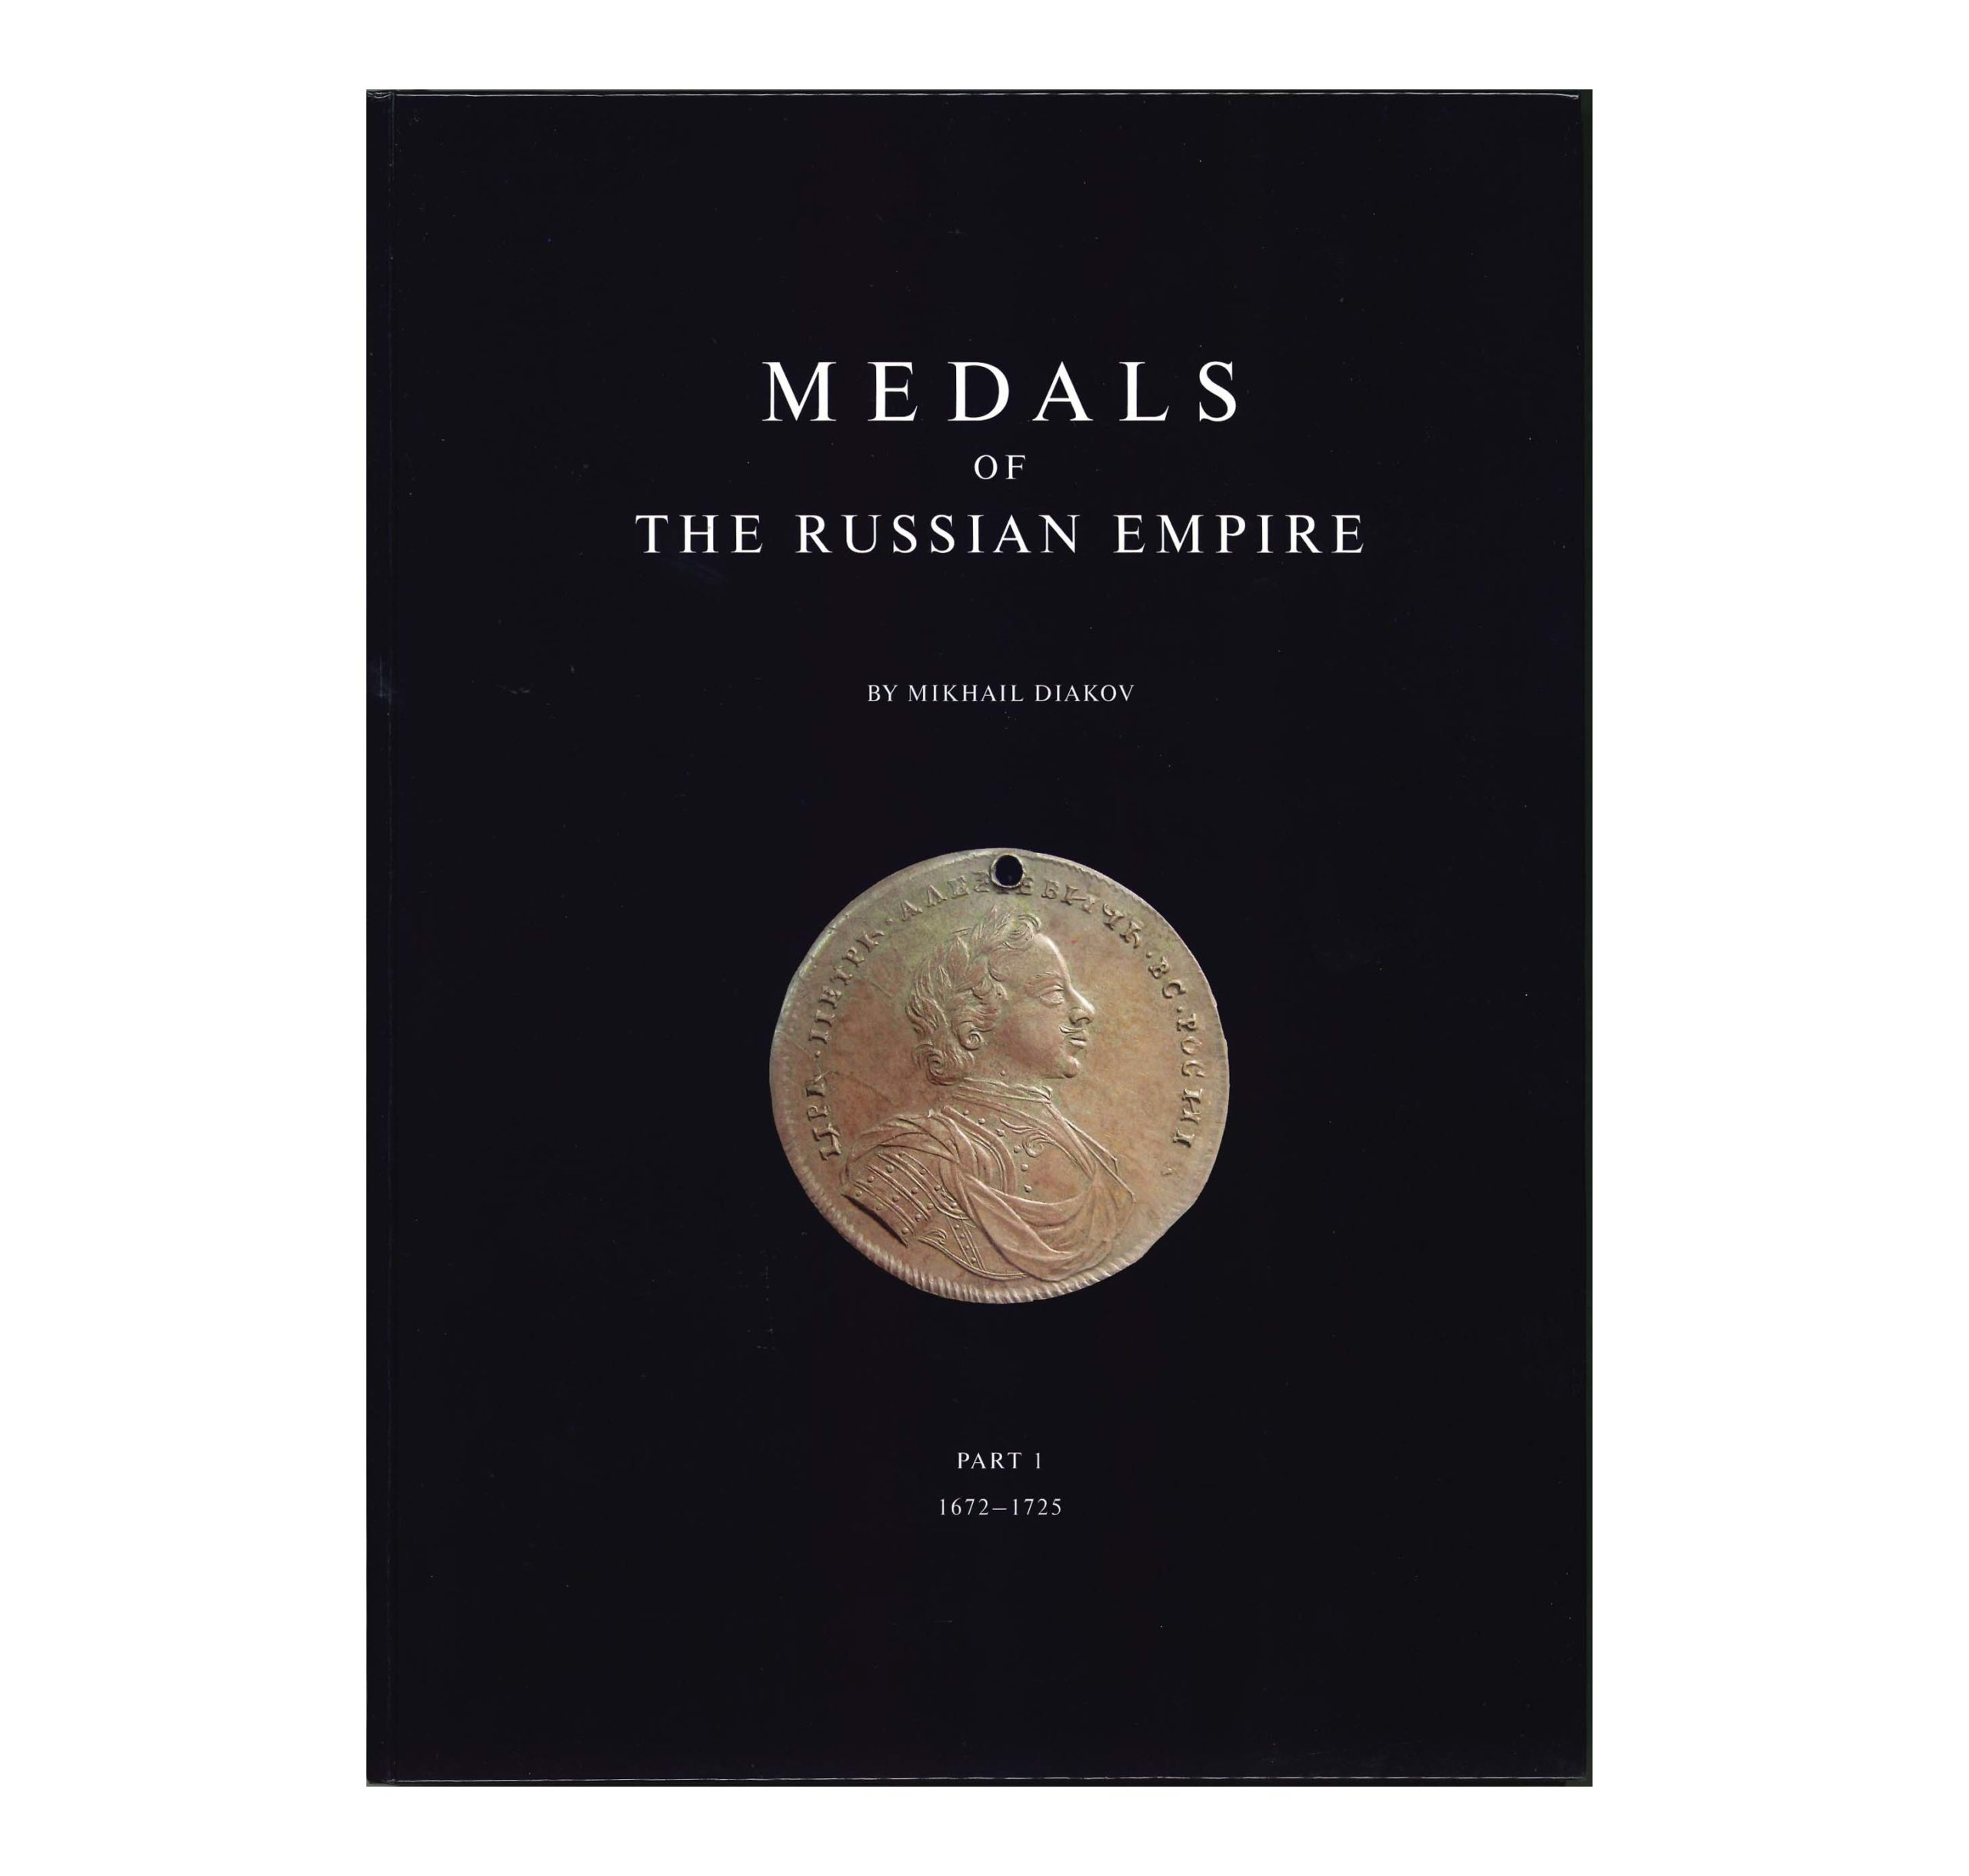 Medals of the Russian Empire, Part 1